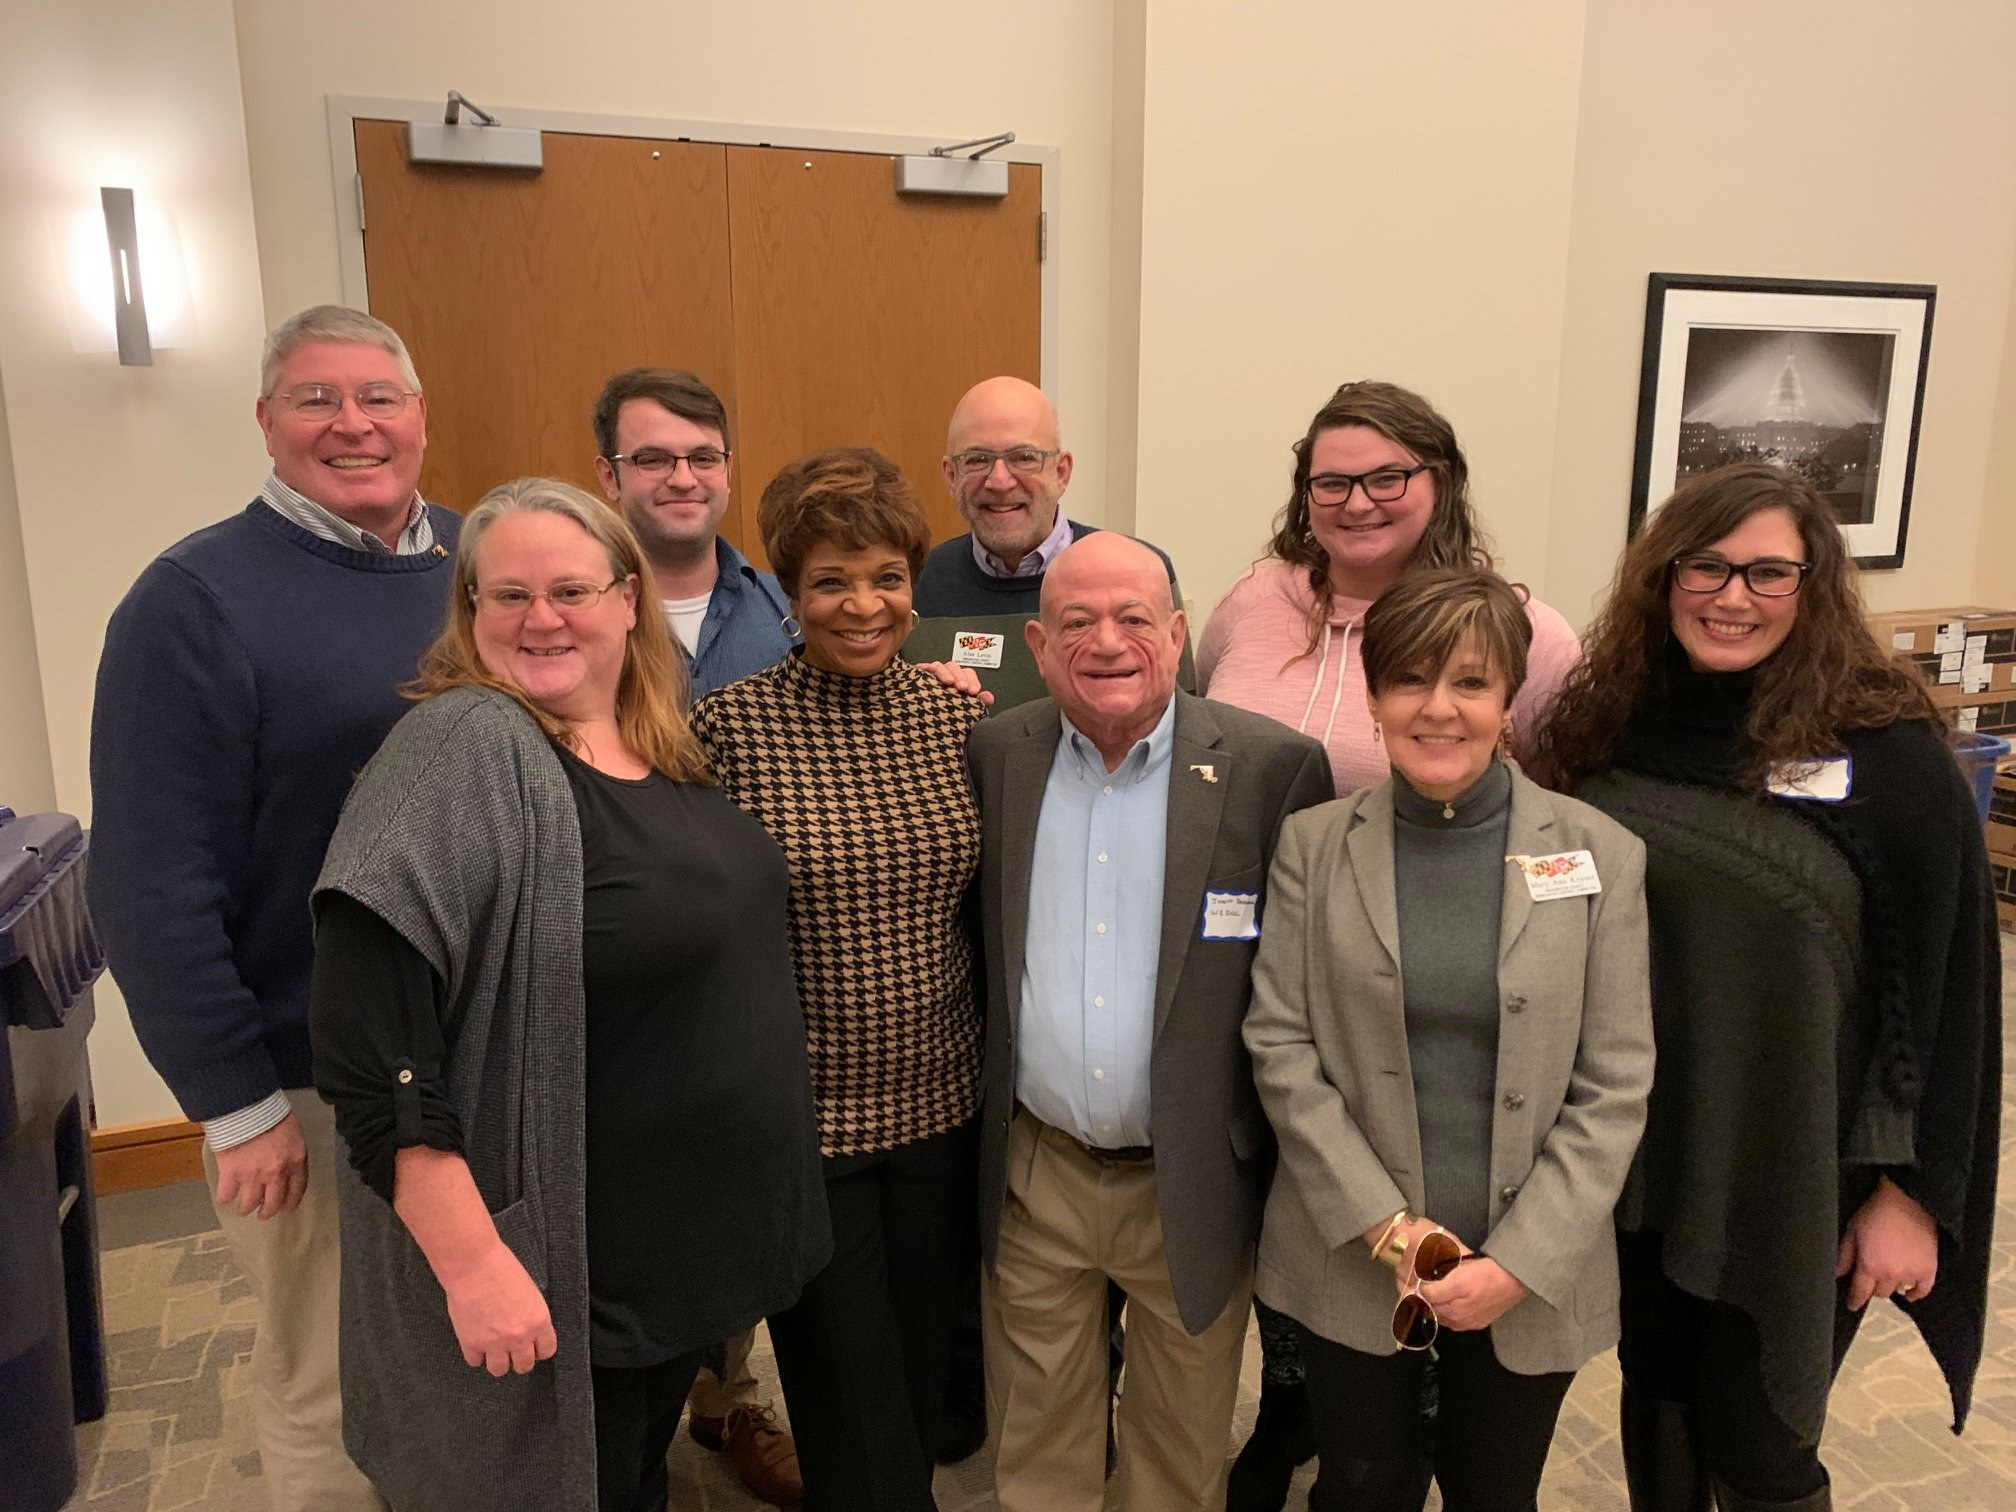 Washington County Democratic Central Committee (MD)